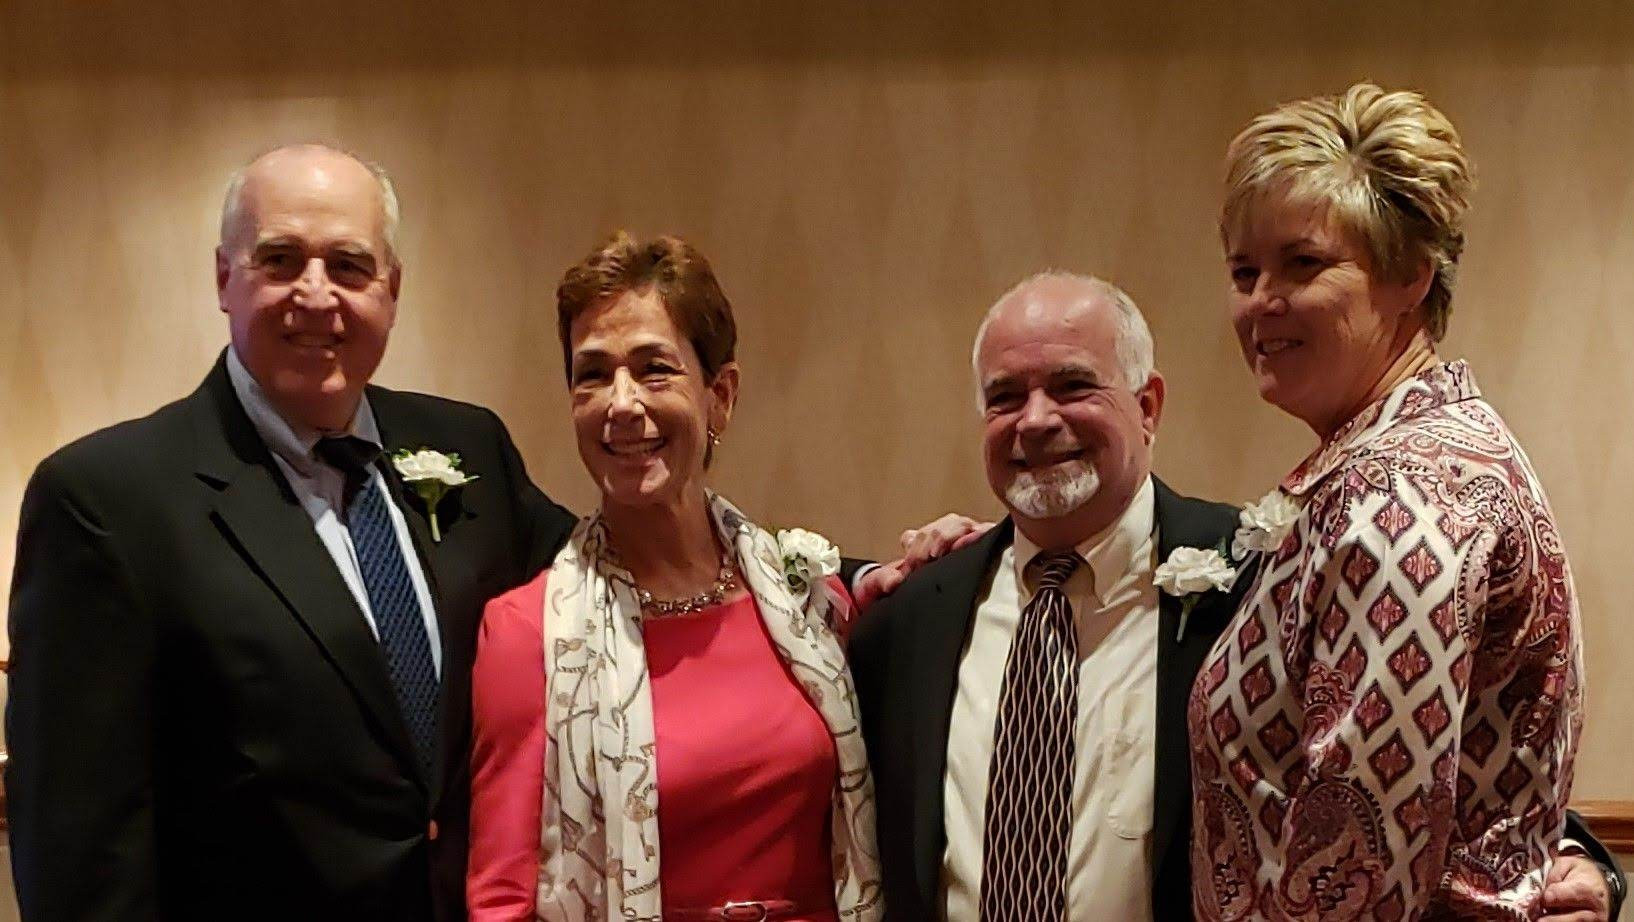 2019 Honorees Jeff Spahr, Maria Marino, Steve Annunziato, and Missy Oman.  (photo by Anna Mastrolillo)